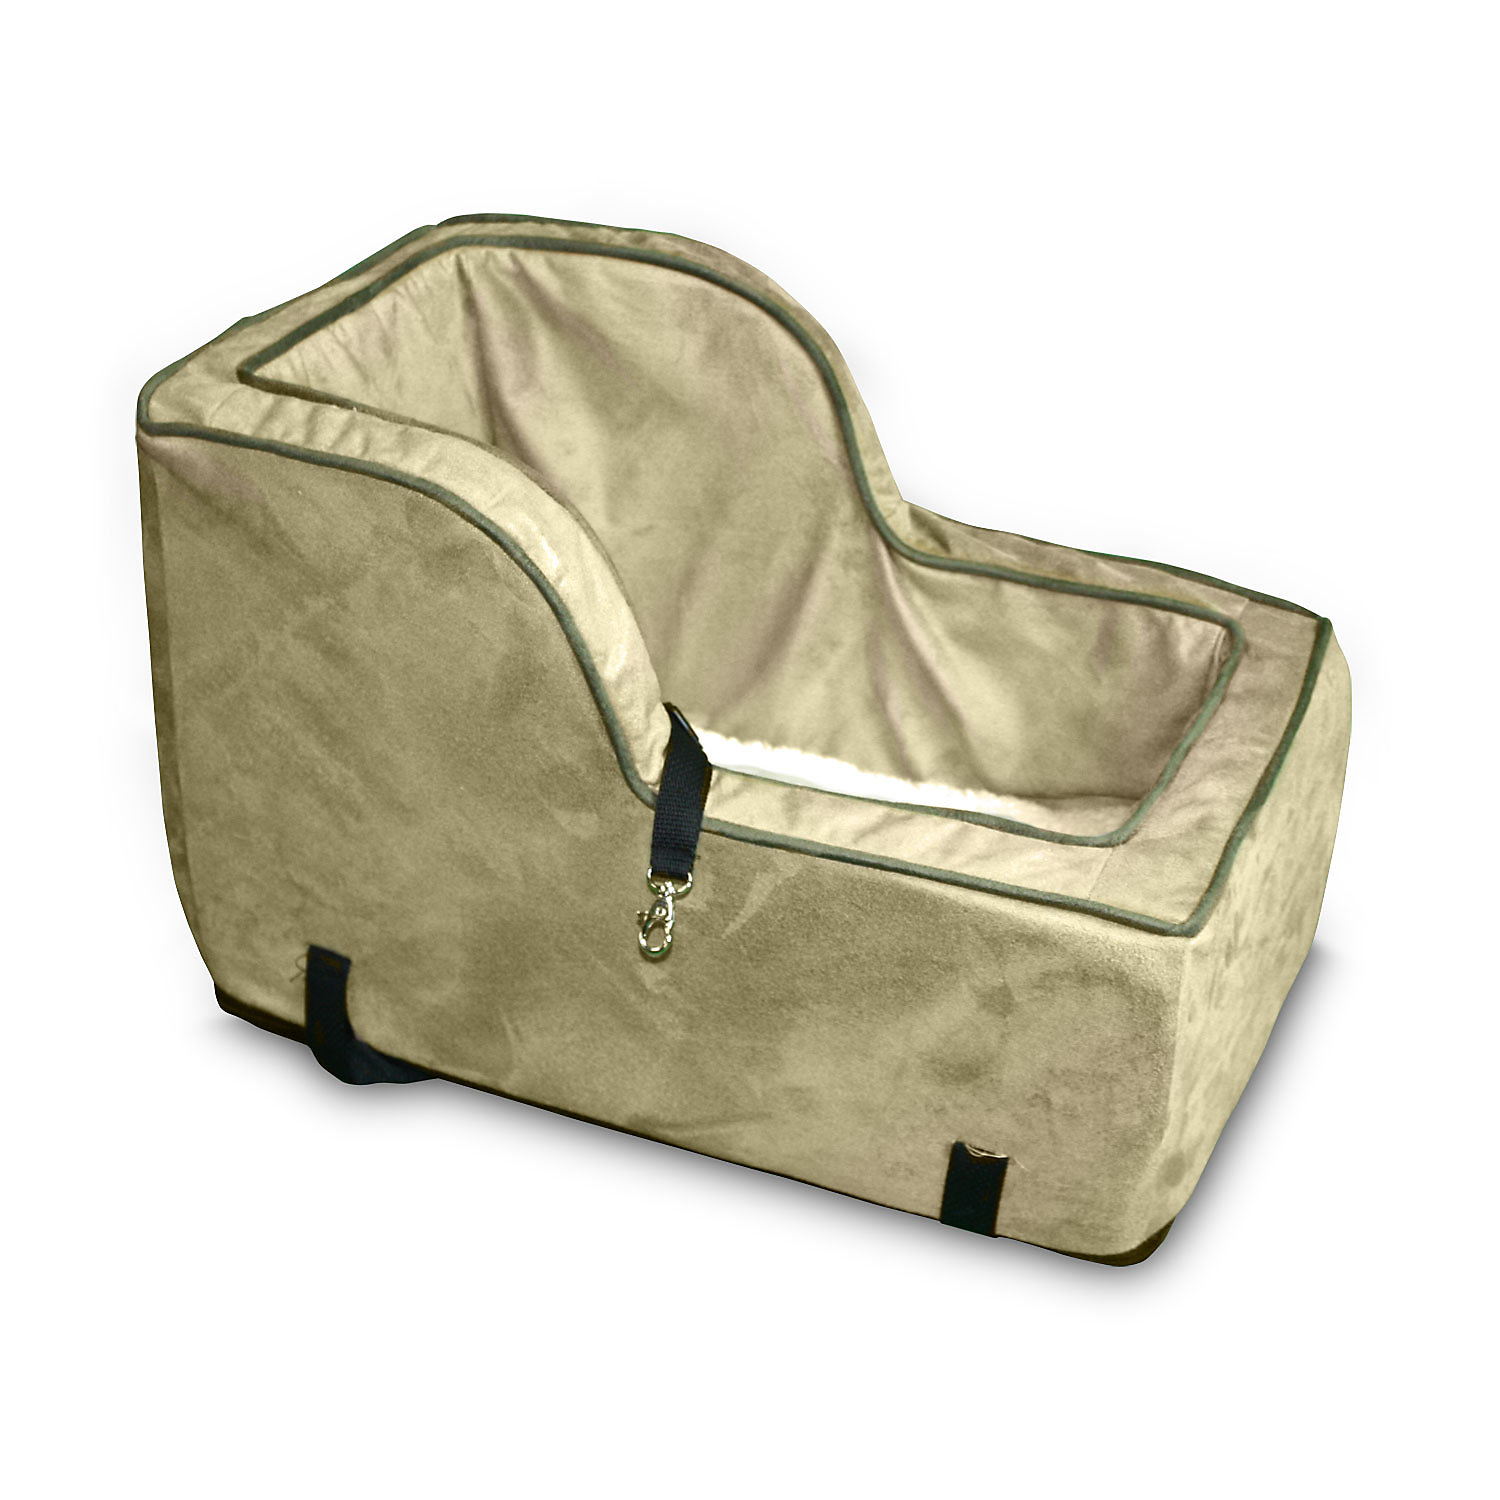 Snoozer Luxury HighBack Console in Camel